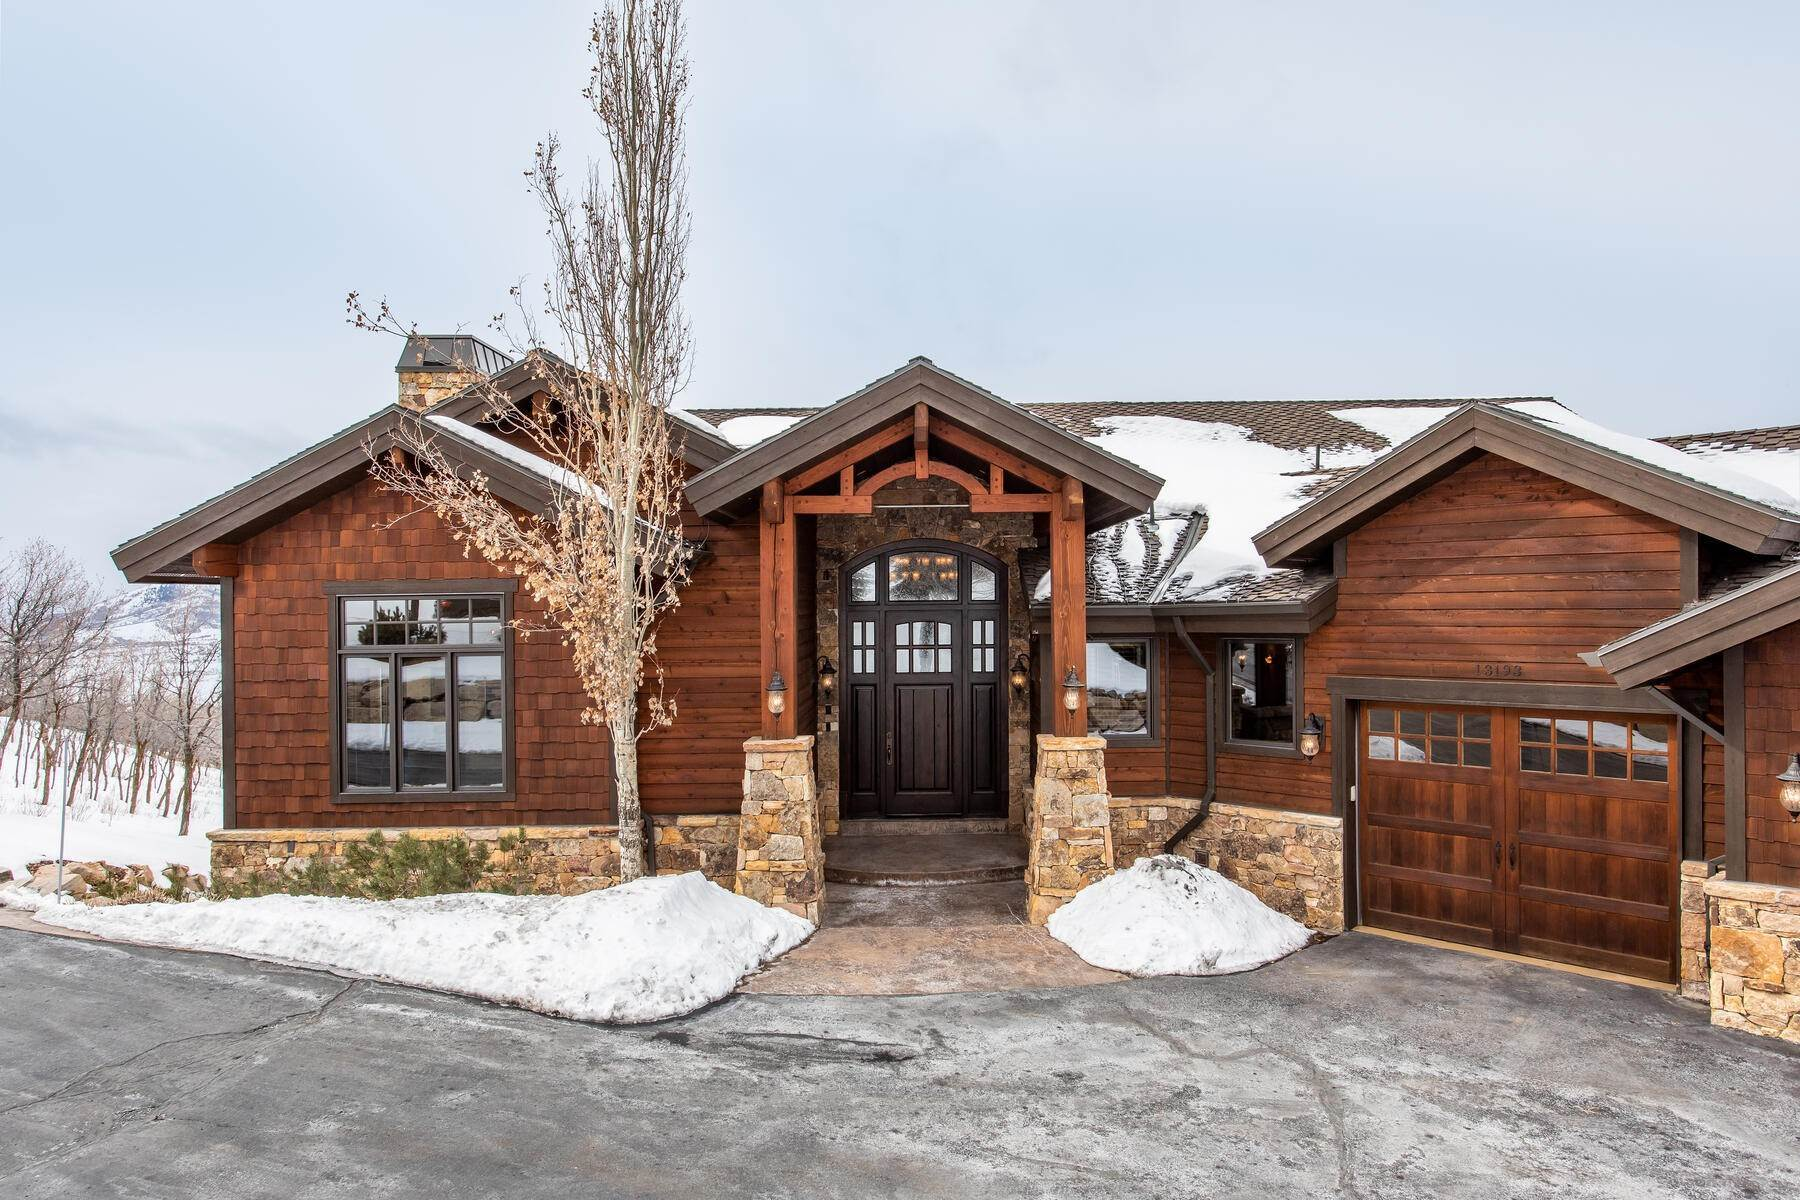 Single Family Homes for Sale at Custom Deer Mountain Estates Home with Spectacular Views 13193 Slalom Run Way Kamas, Utah 84036 United States